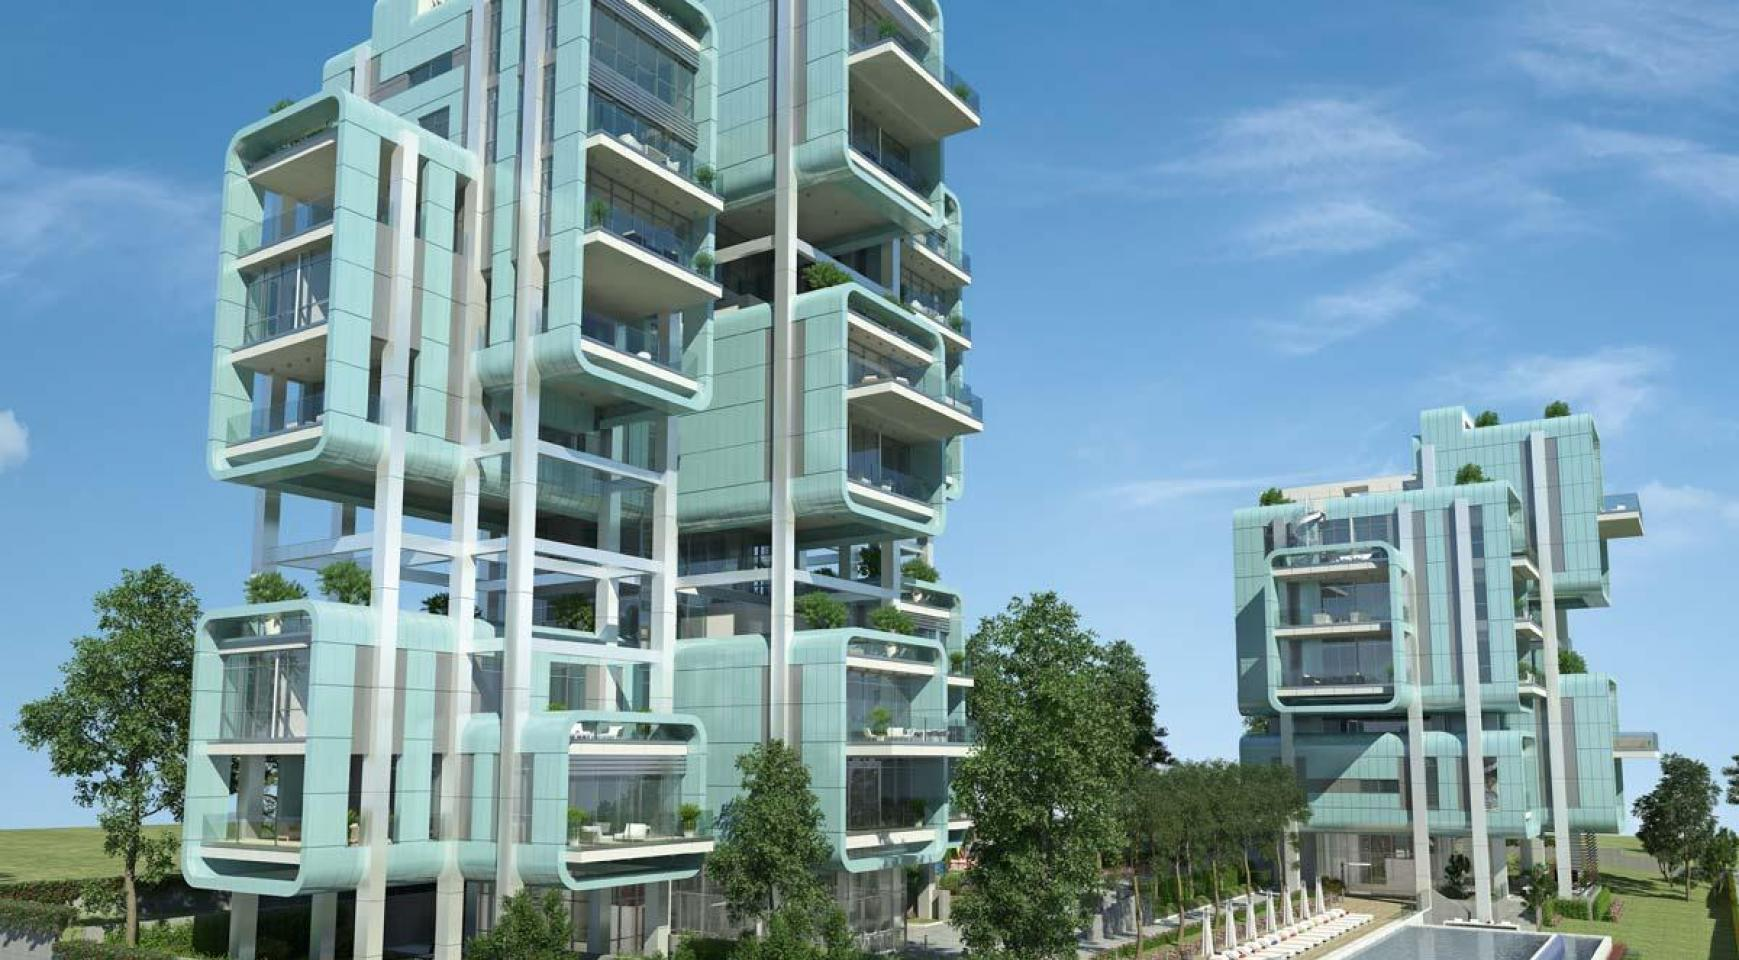 Elite 3 Bedroom Apartment with Roof Garden within a New Complex - 25